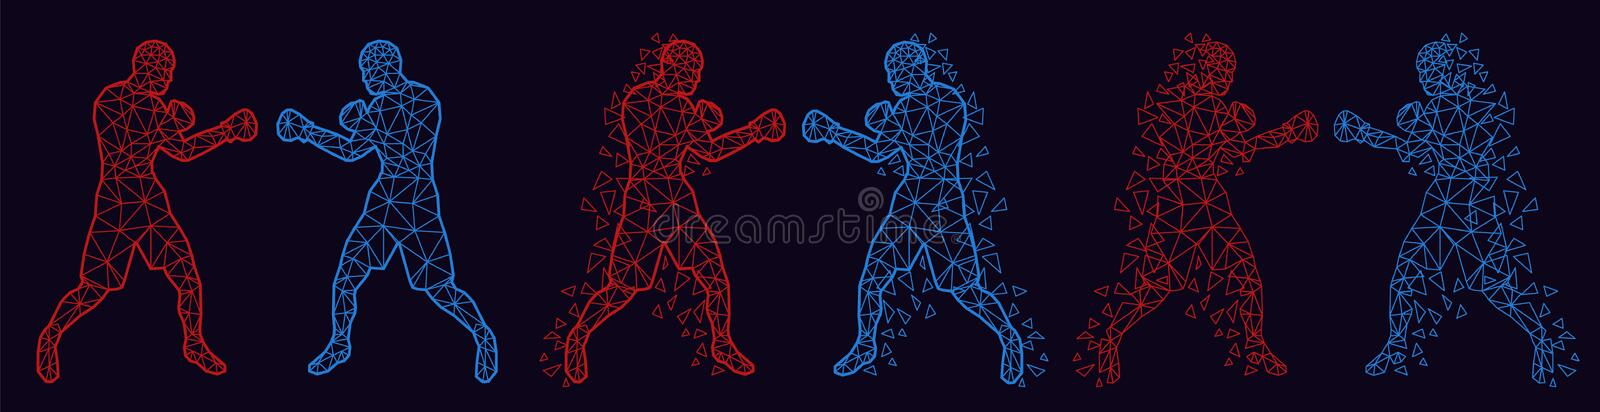 Abstract boxers fighting against each other. Vector illustration low poly stock image